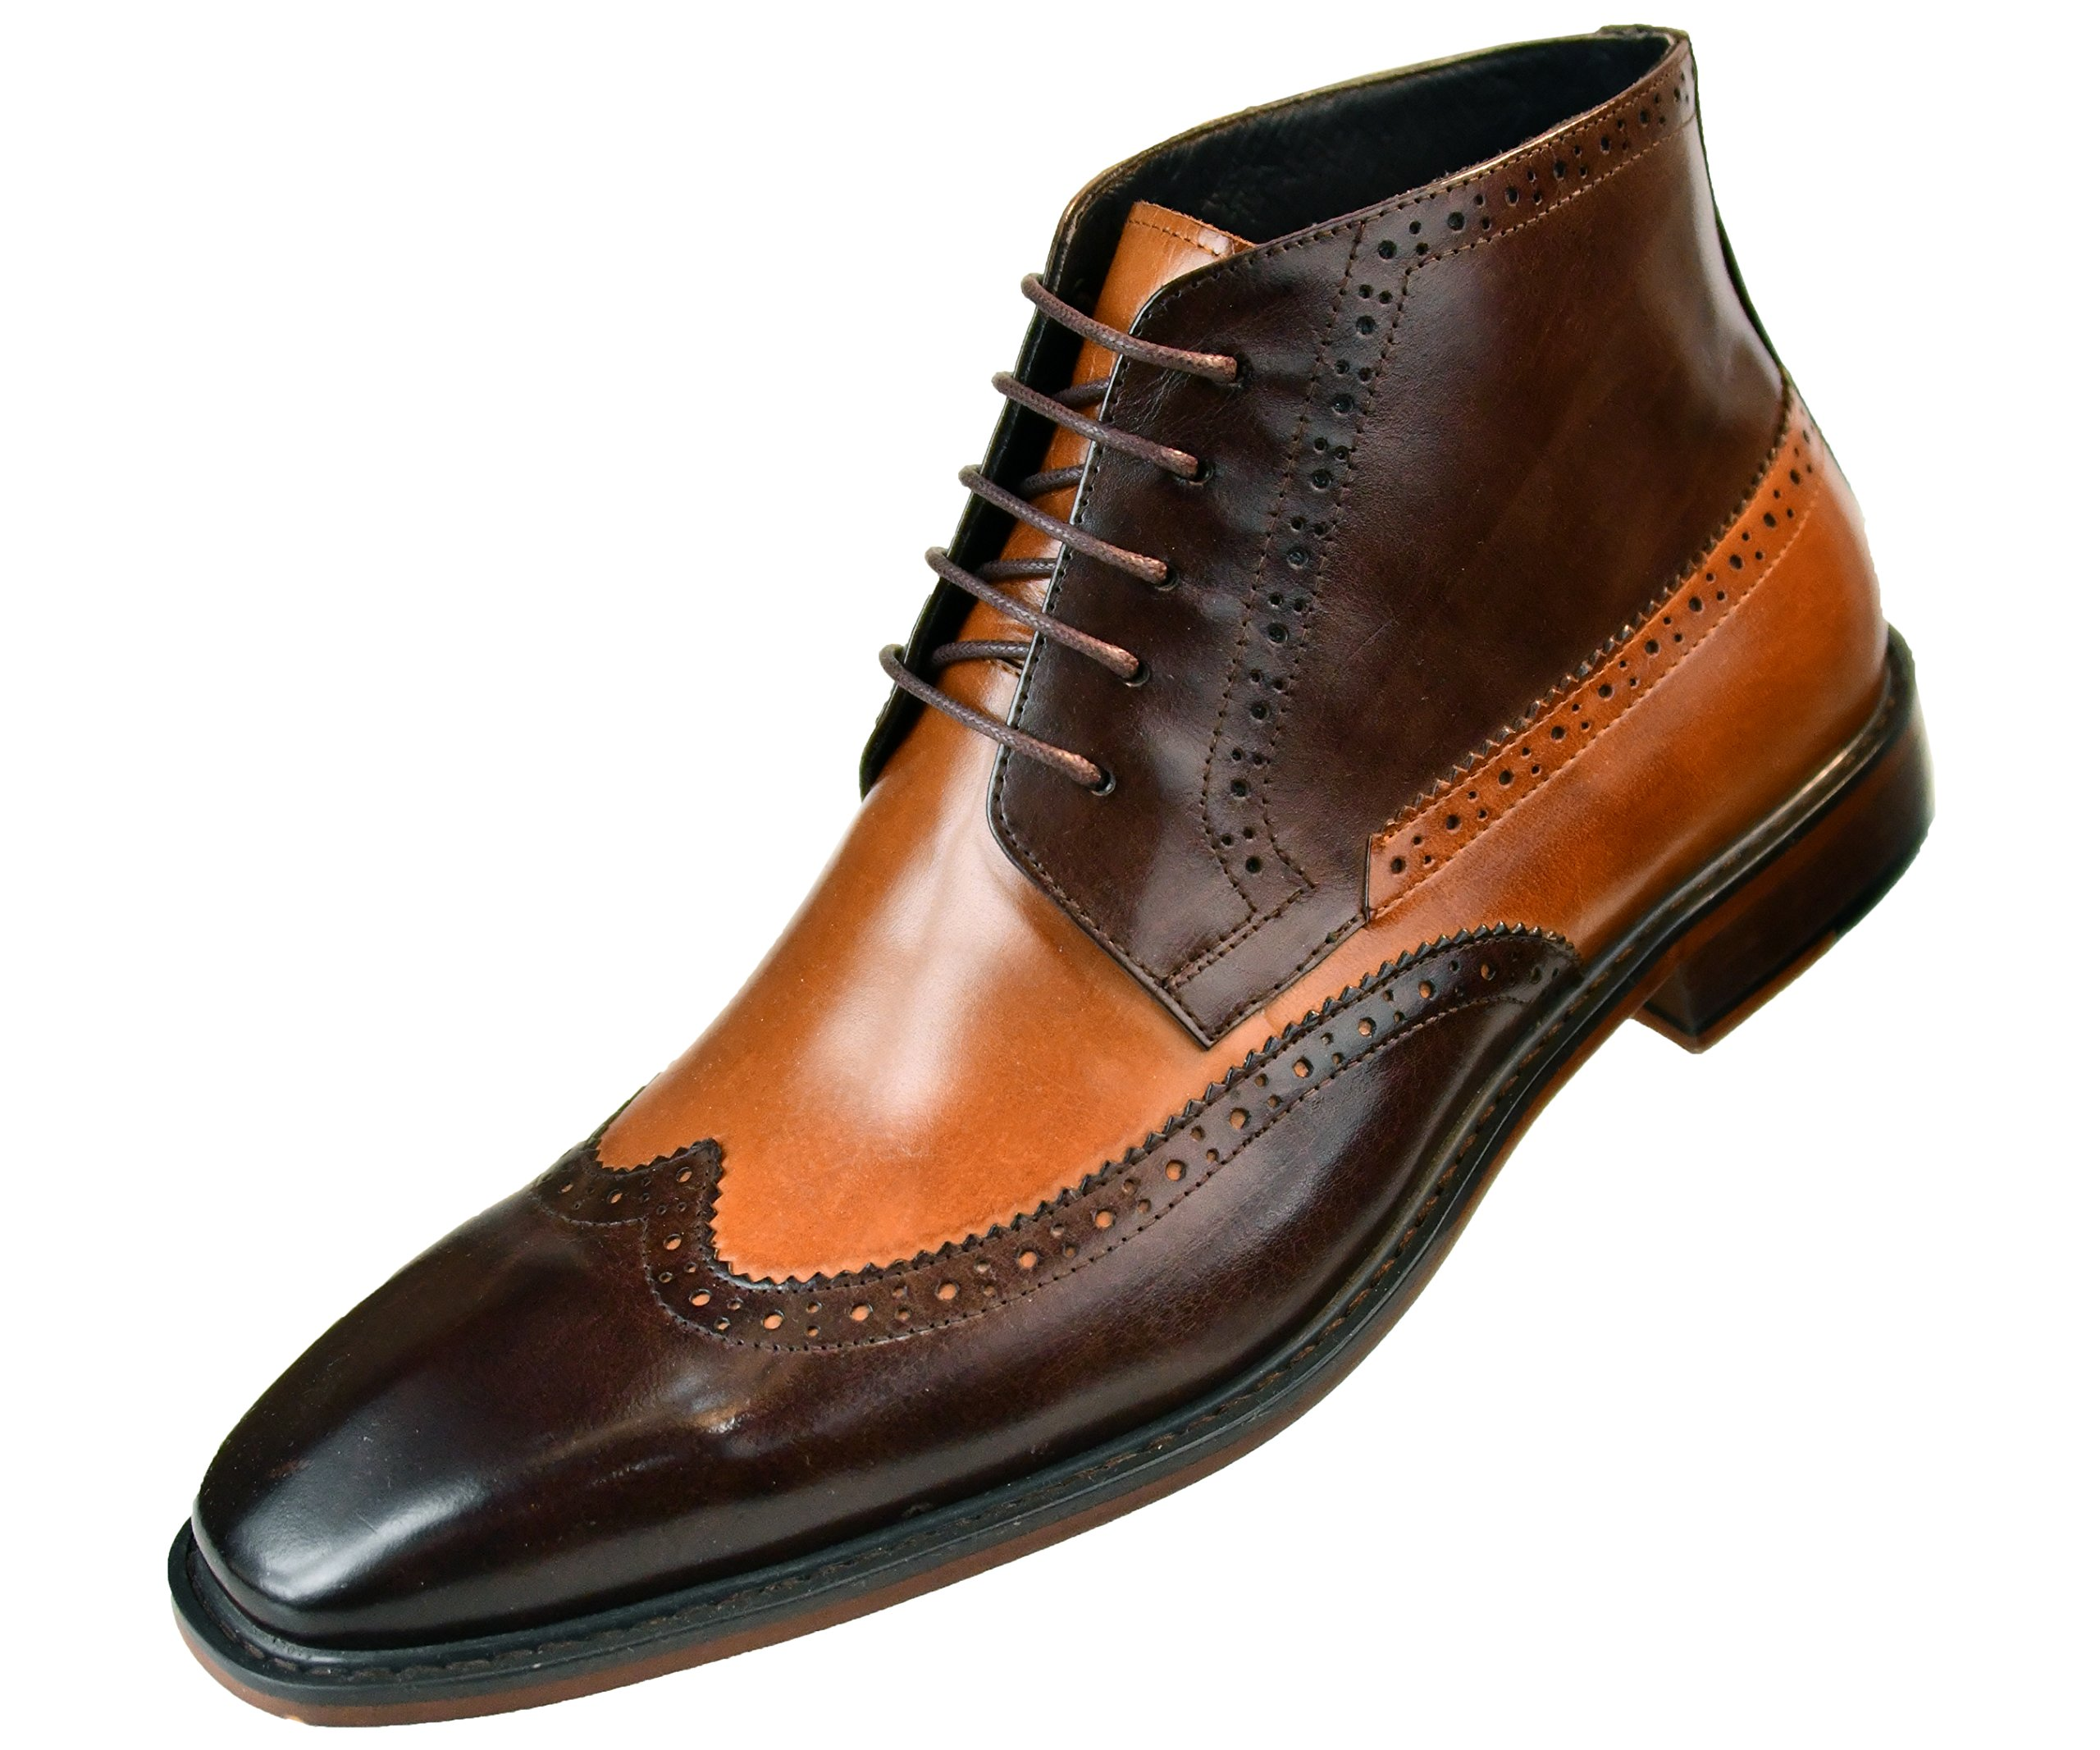 Asher Green Mens Two Tone Genuine Calf Leather Wingtip Spectator Oxford Dress Shoe, Low-Top High-Top